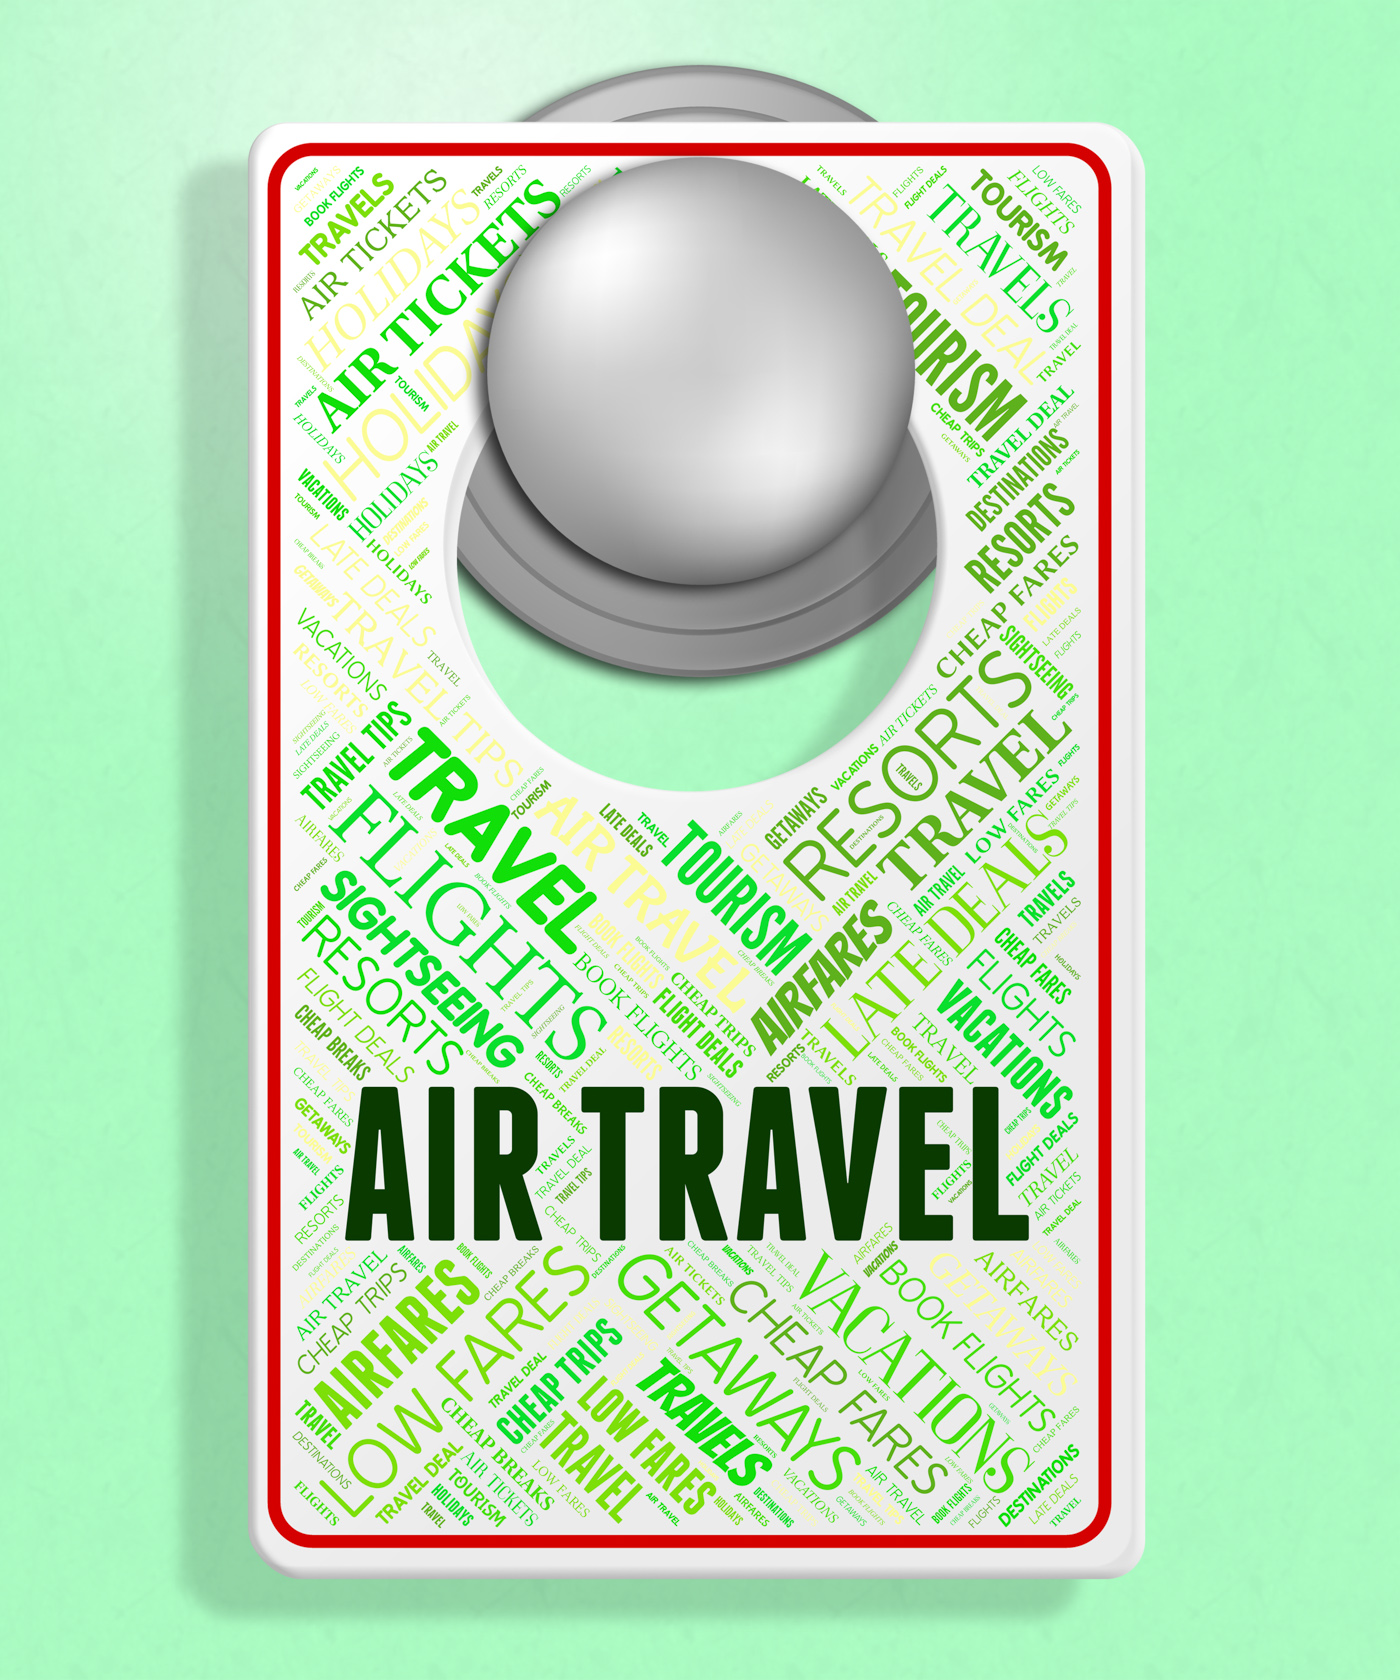 Air Travel Represents Plane Message And Fly, Aeroplane, Sign, Vacational, Vacation, HQ Photo